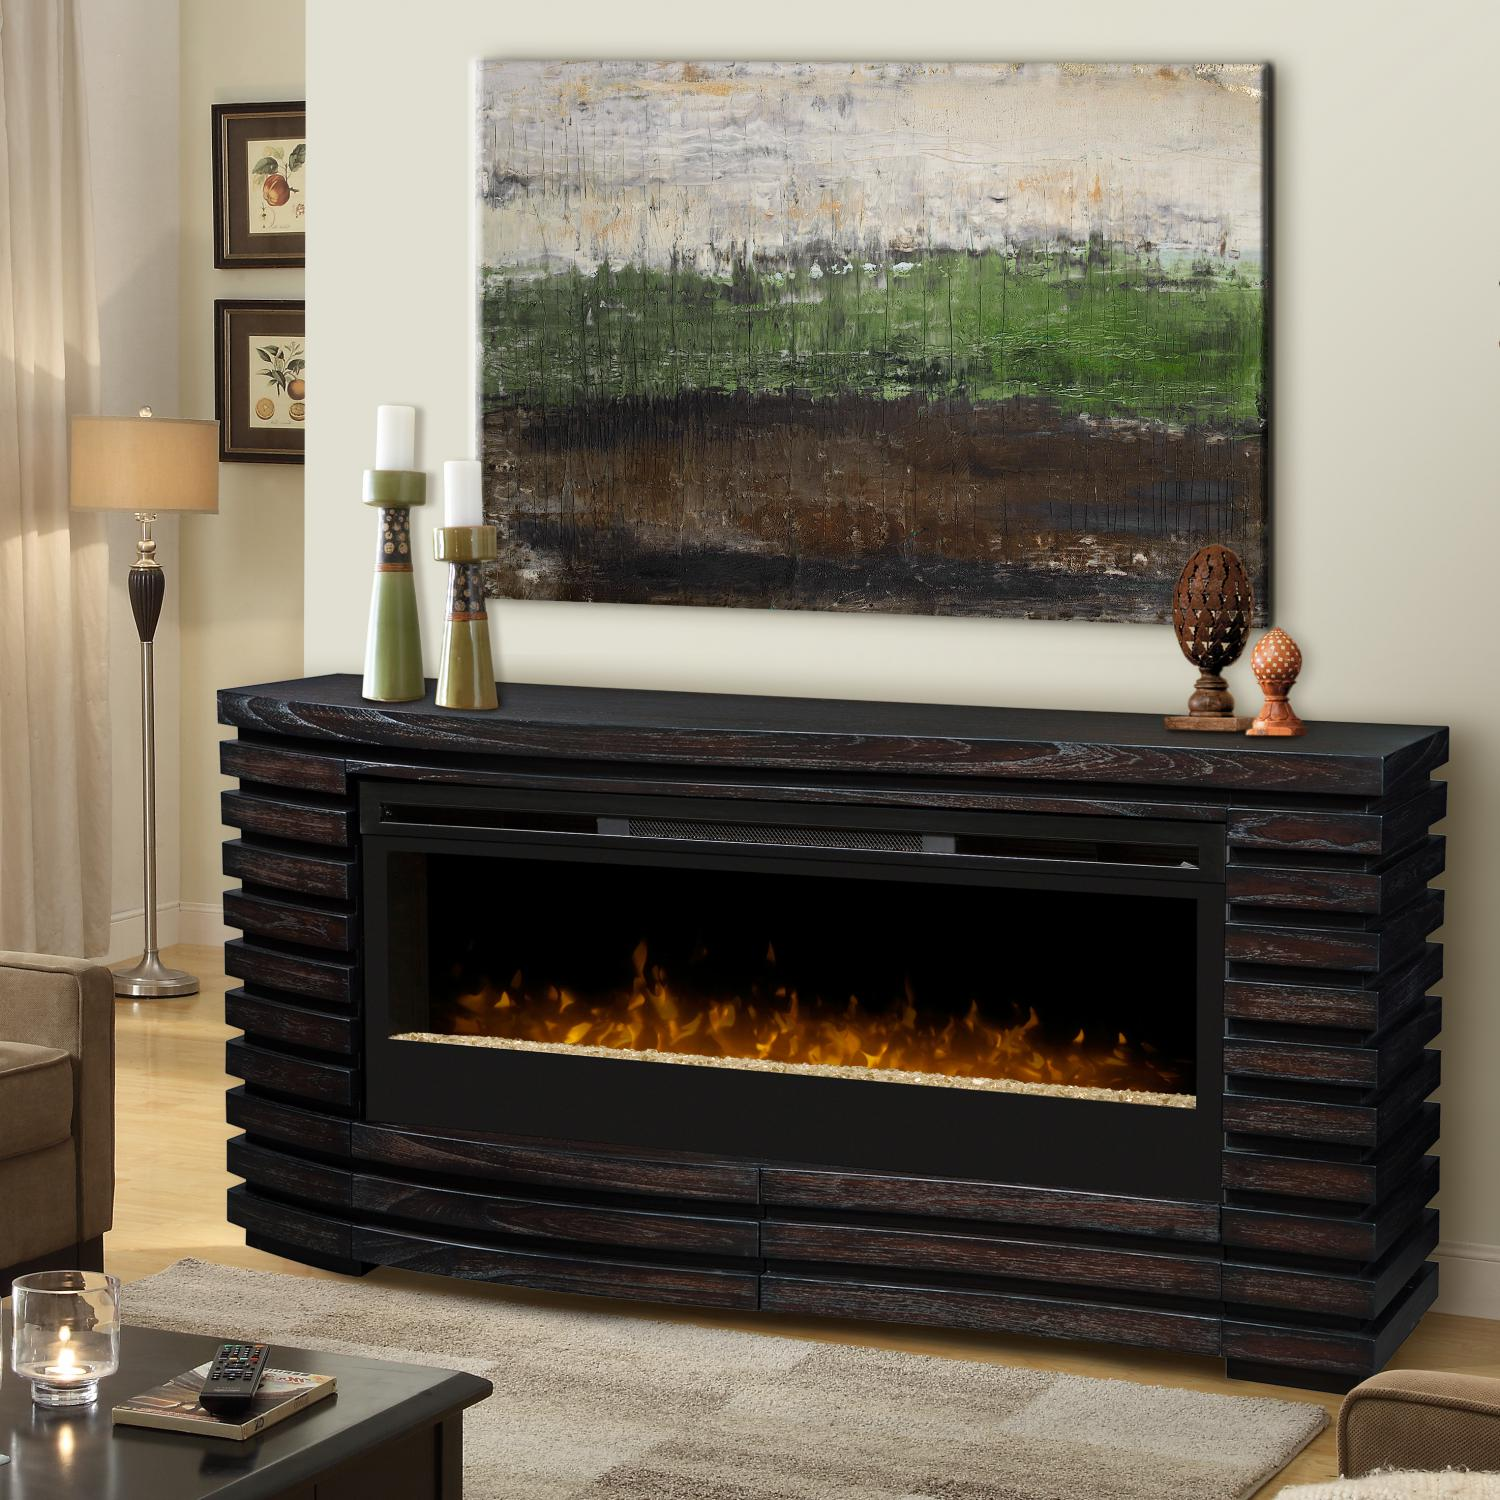 Dimplex Elliot 70-Inch Electric Fireplace Mantel - Acryli...